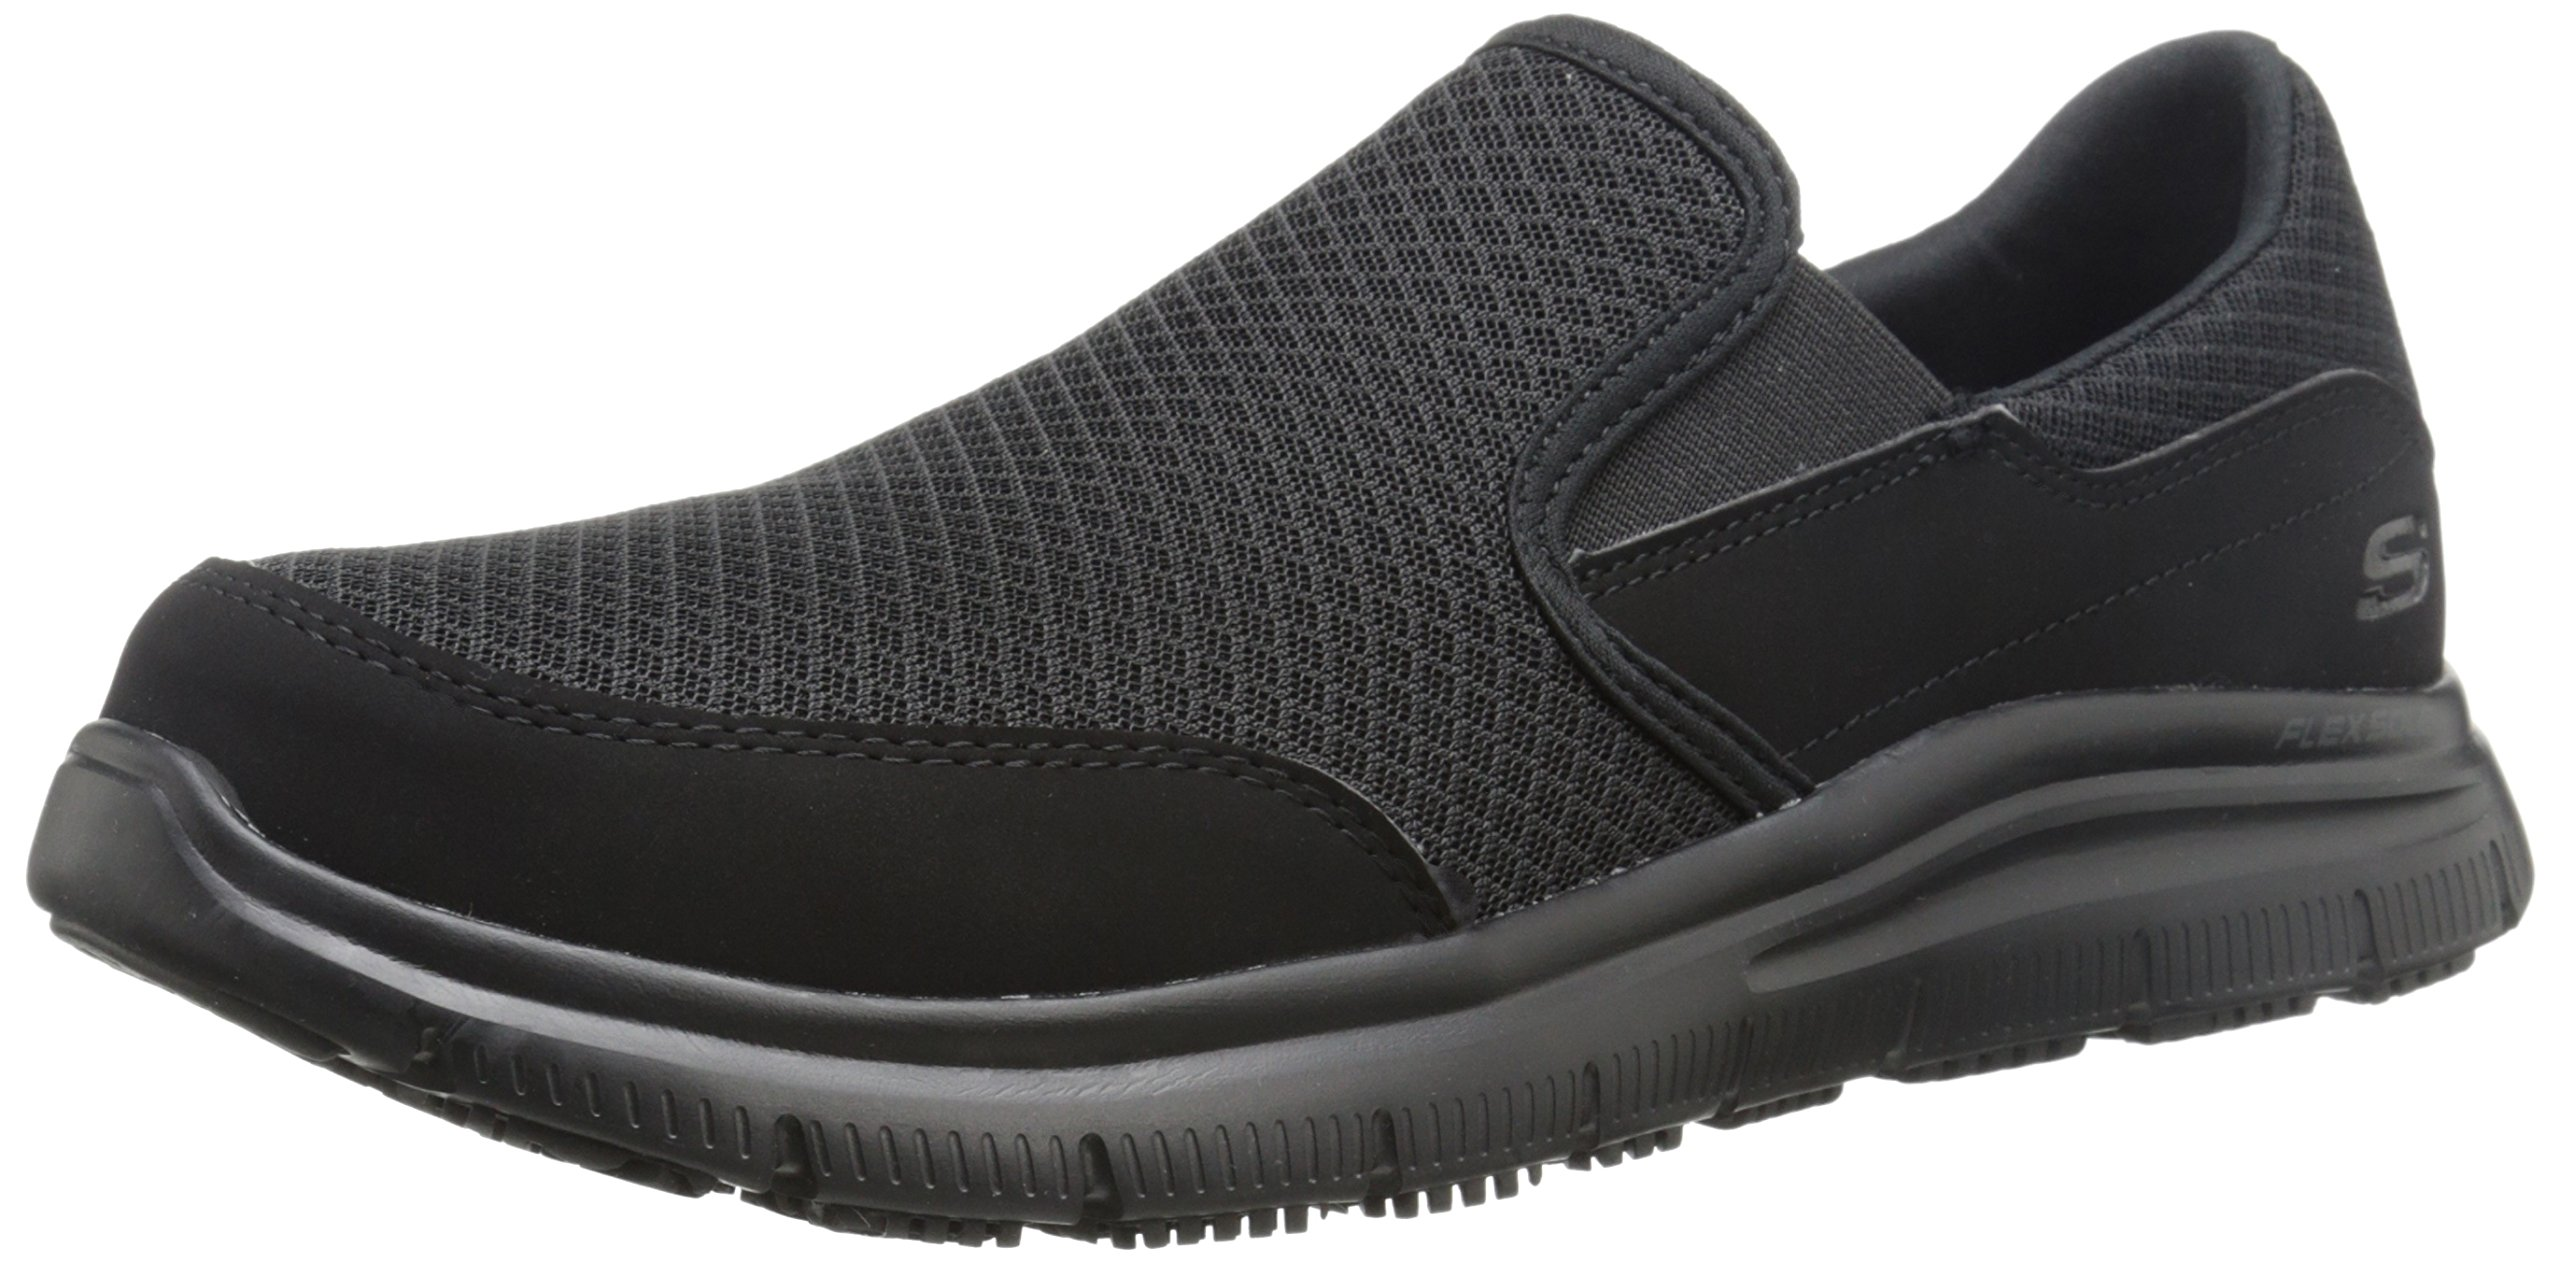 Skechers Men's Black Flex Advantage Slip Resistant Mcallen Slip On - 14 D(M) US